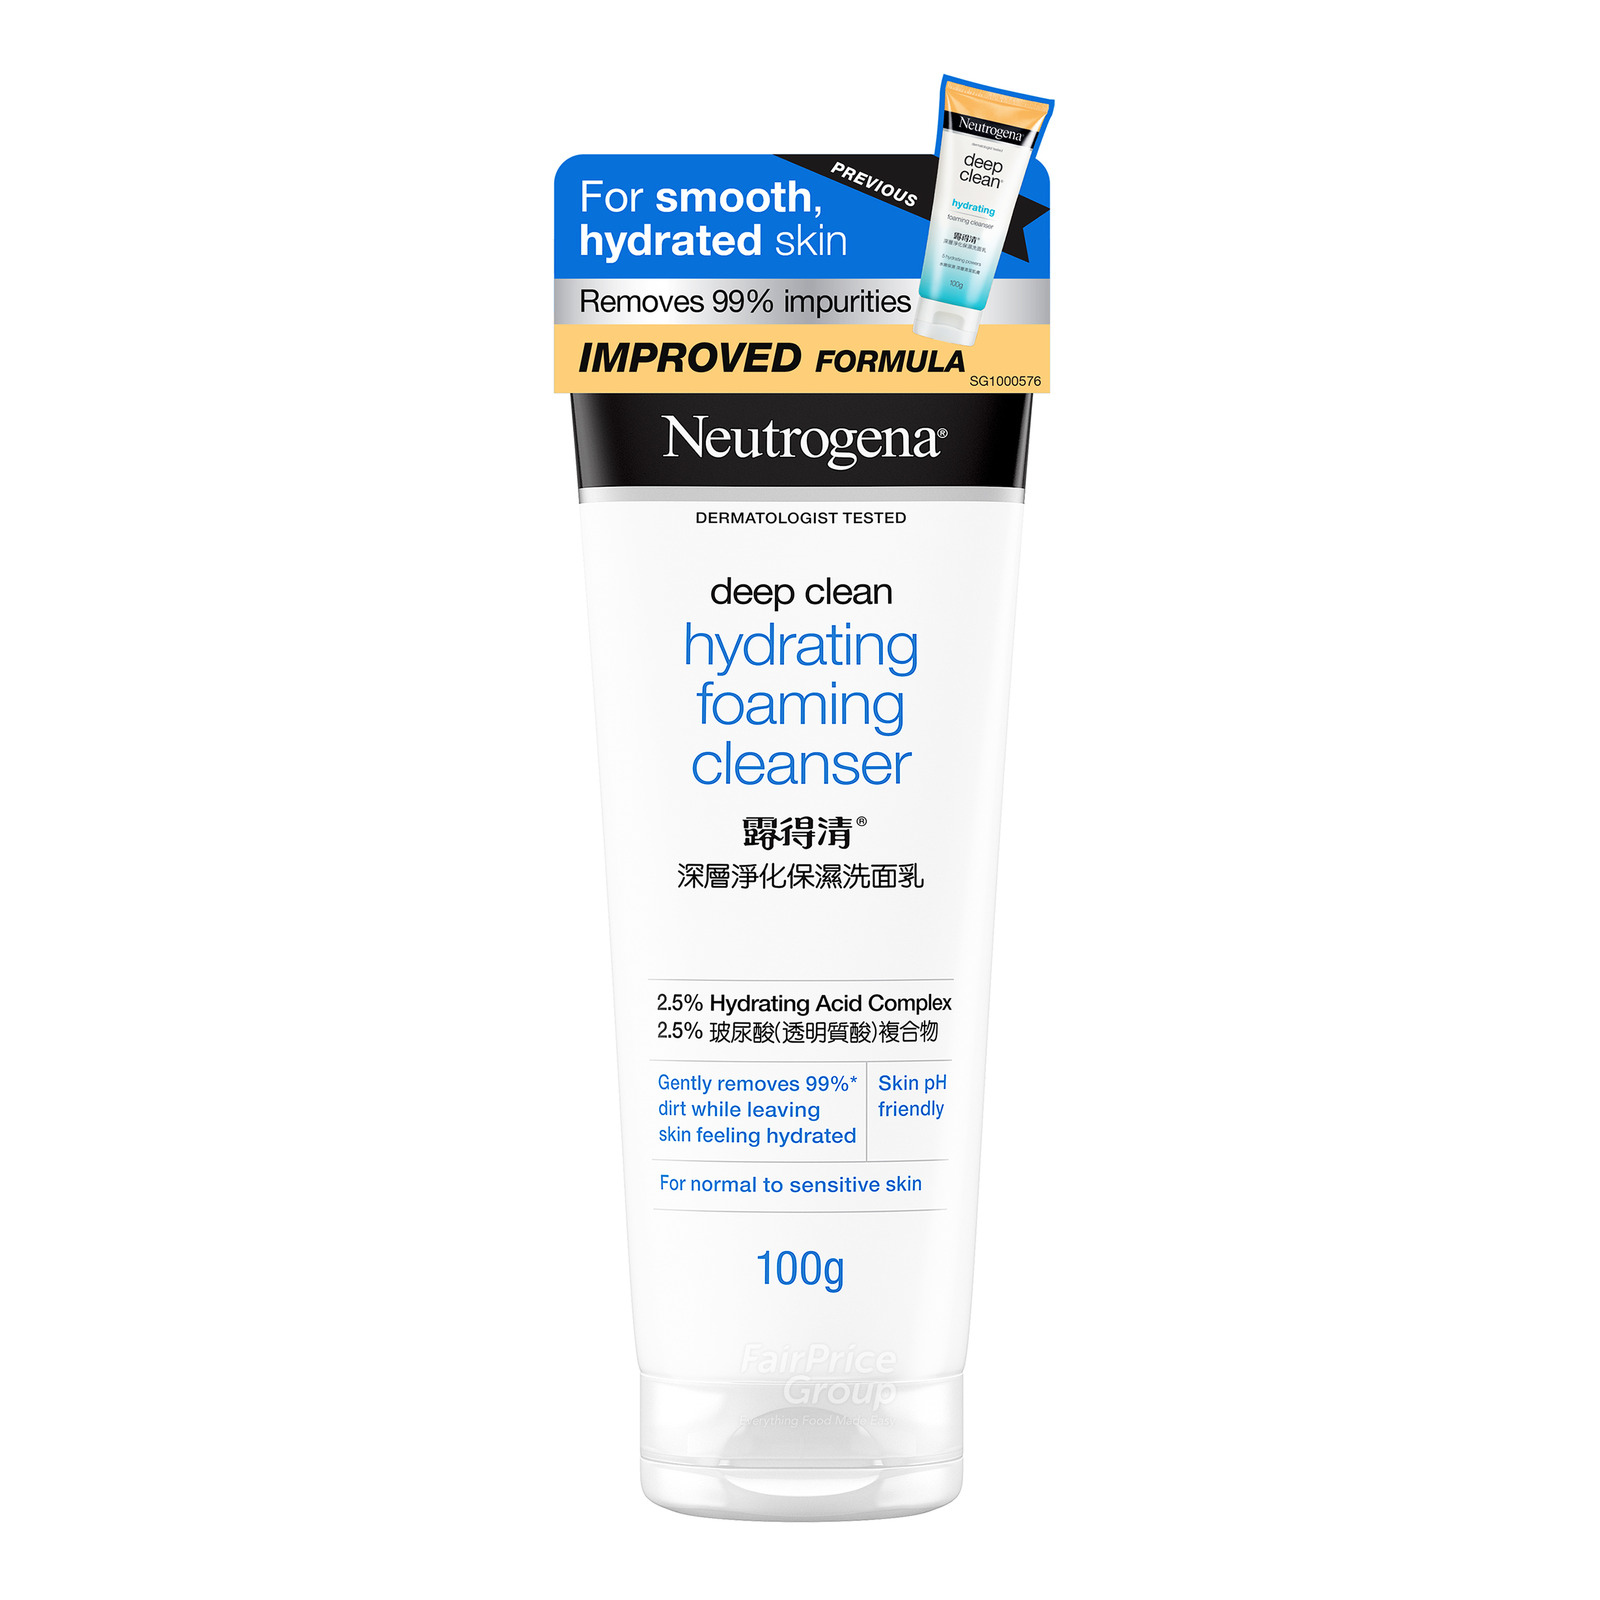 Neutrogena Deep Clean Hydrating Foaming Cleanser